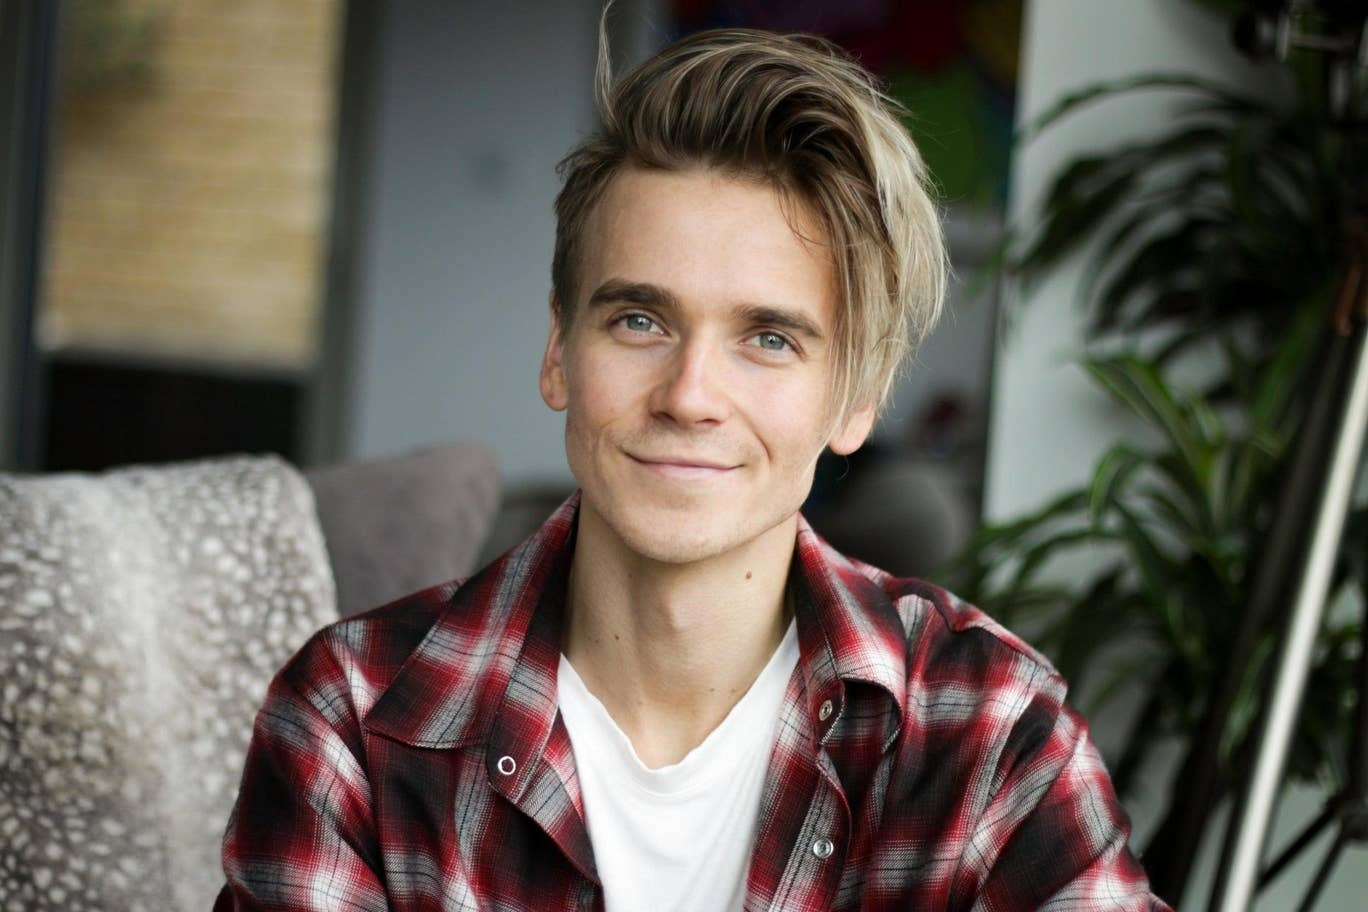 YouTuber Joe Sugg to make West End debut in Waitress